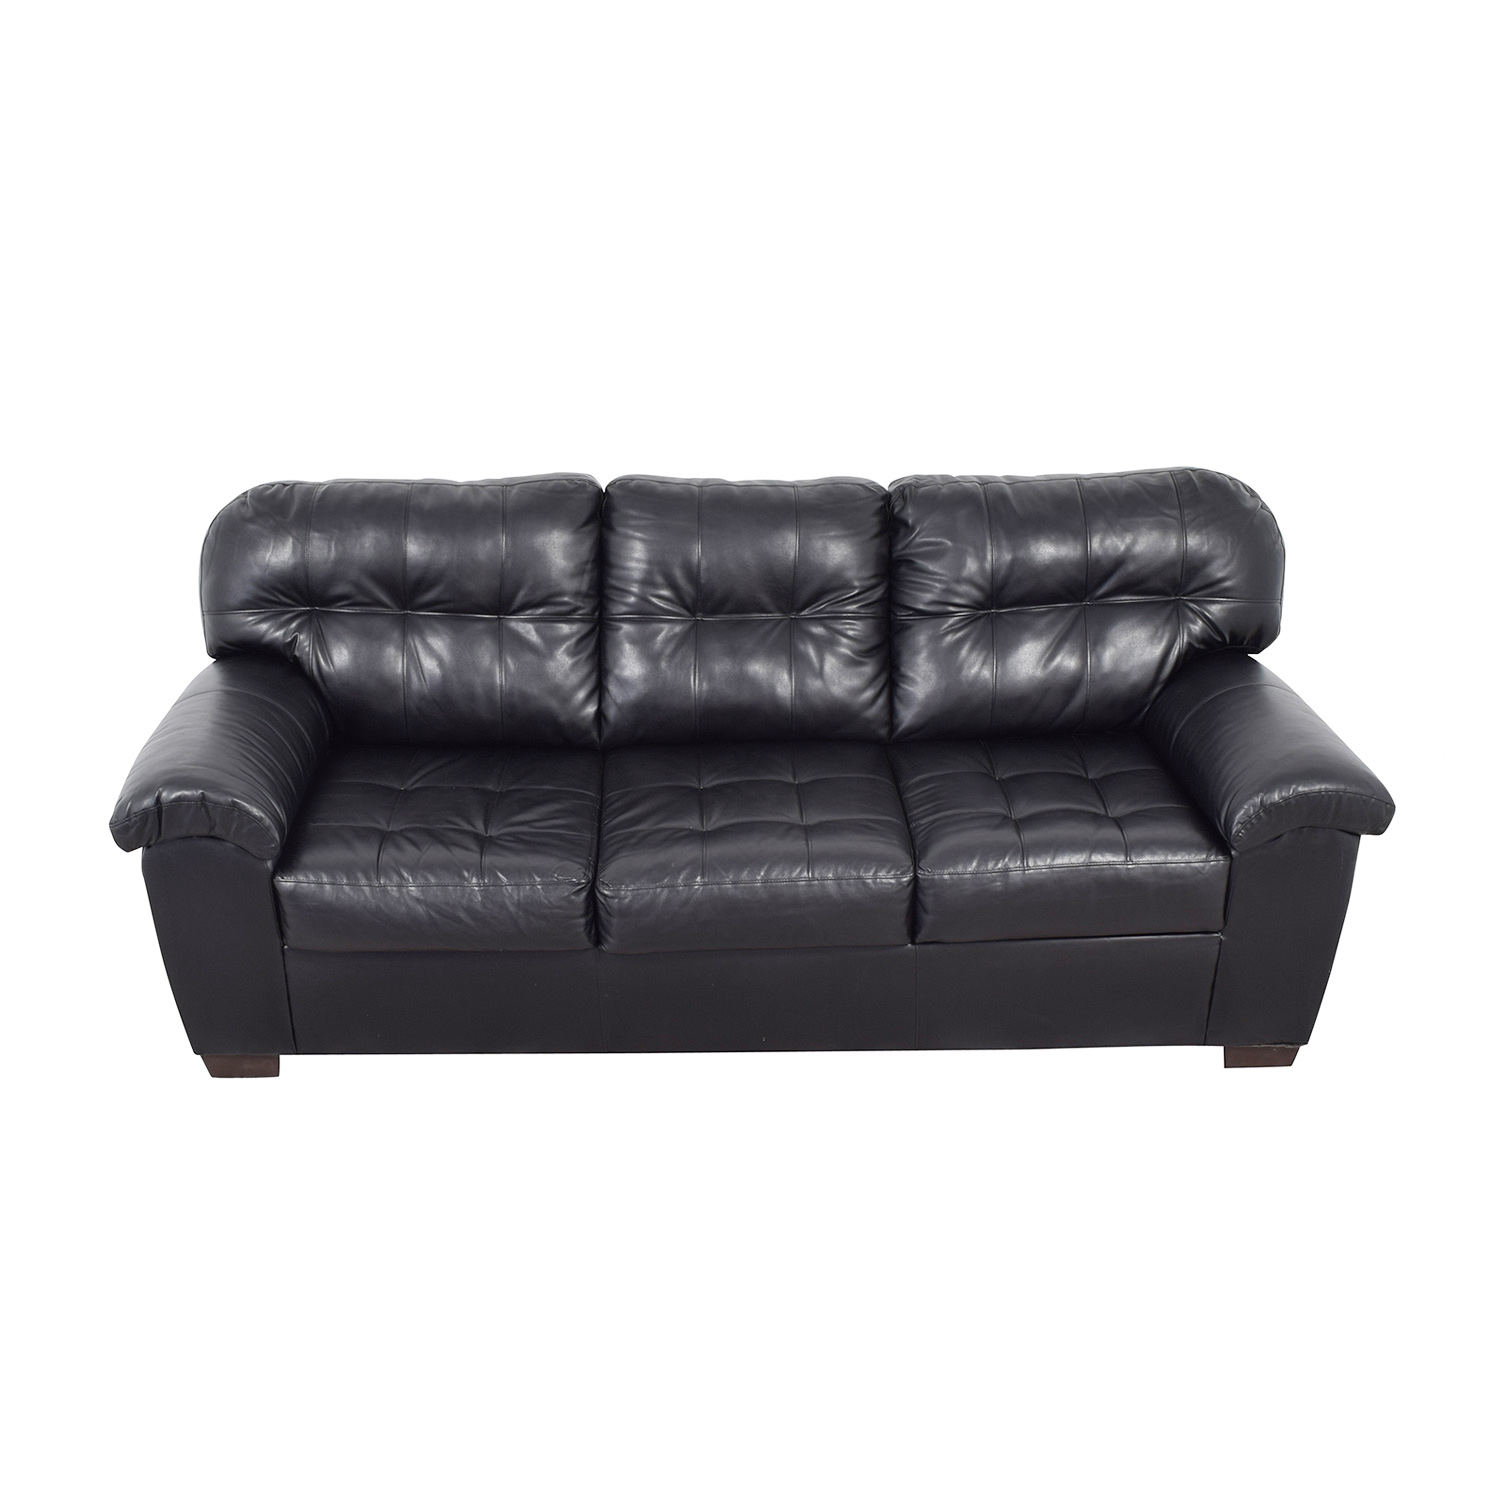 buy Black Tufted Leather Three-Cushion Couch